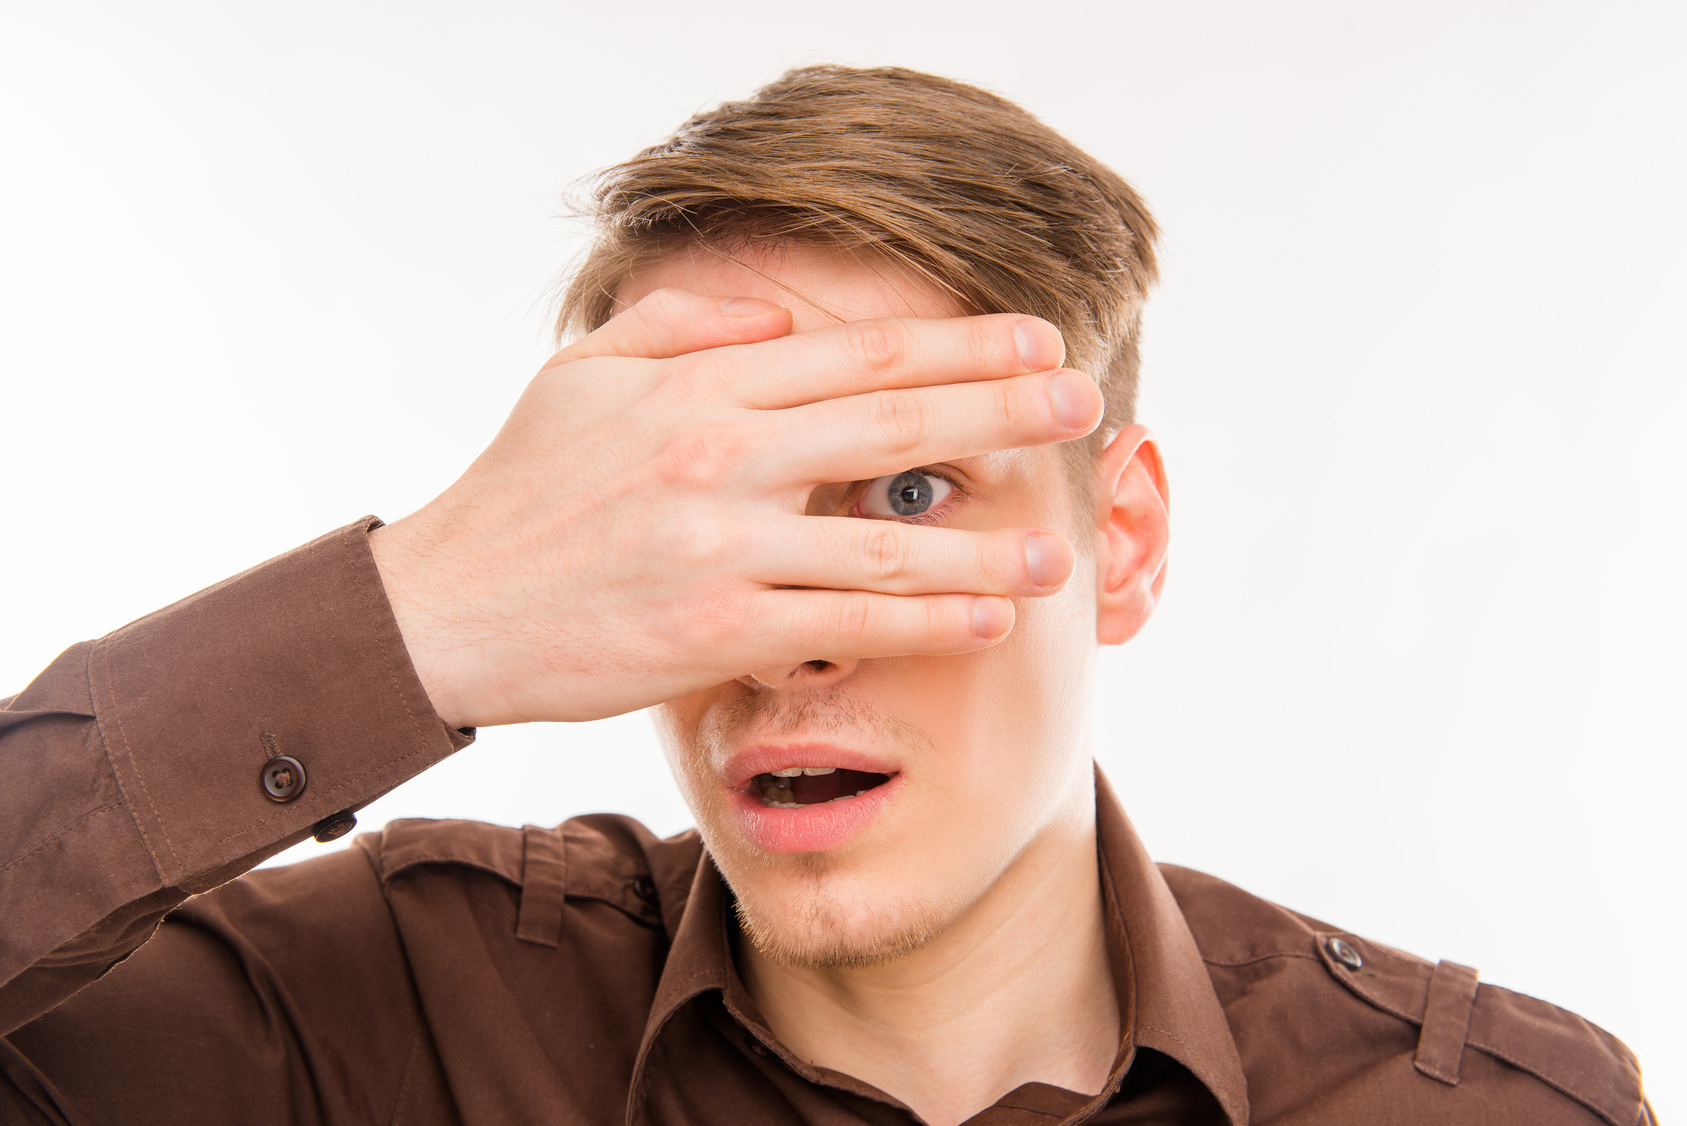 Surprised young man hiding eyes behind his hand